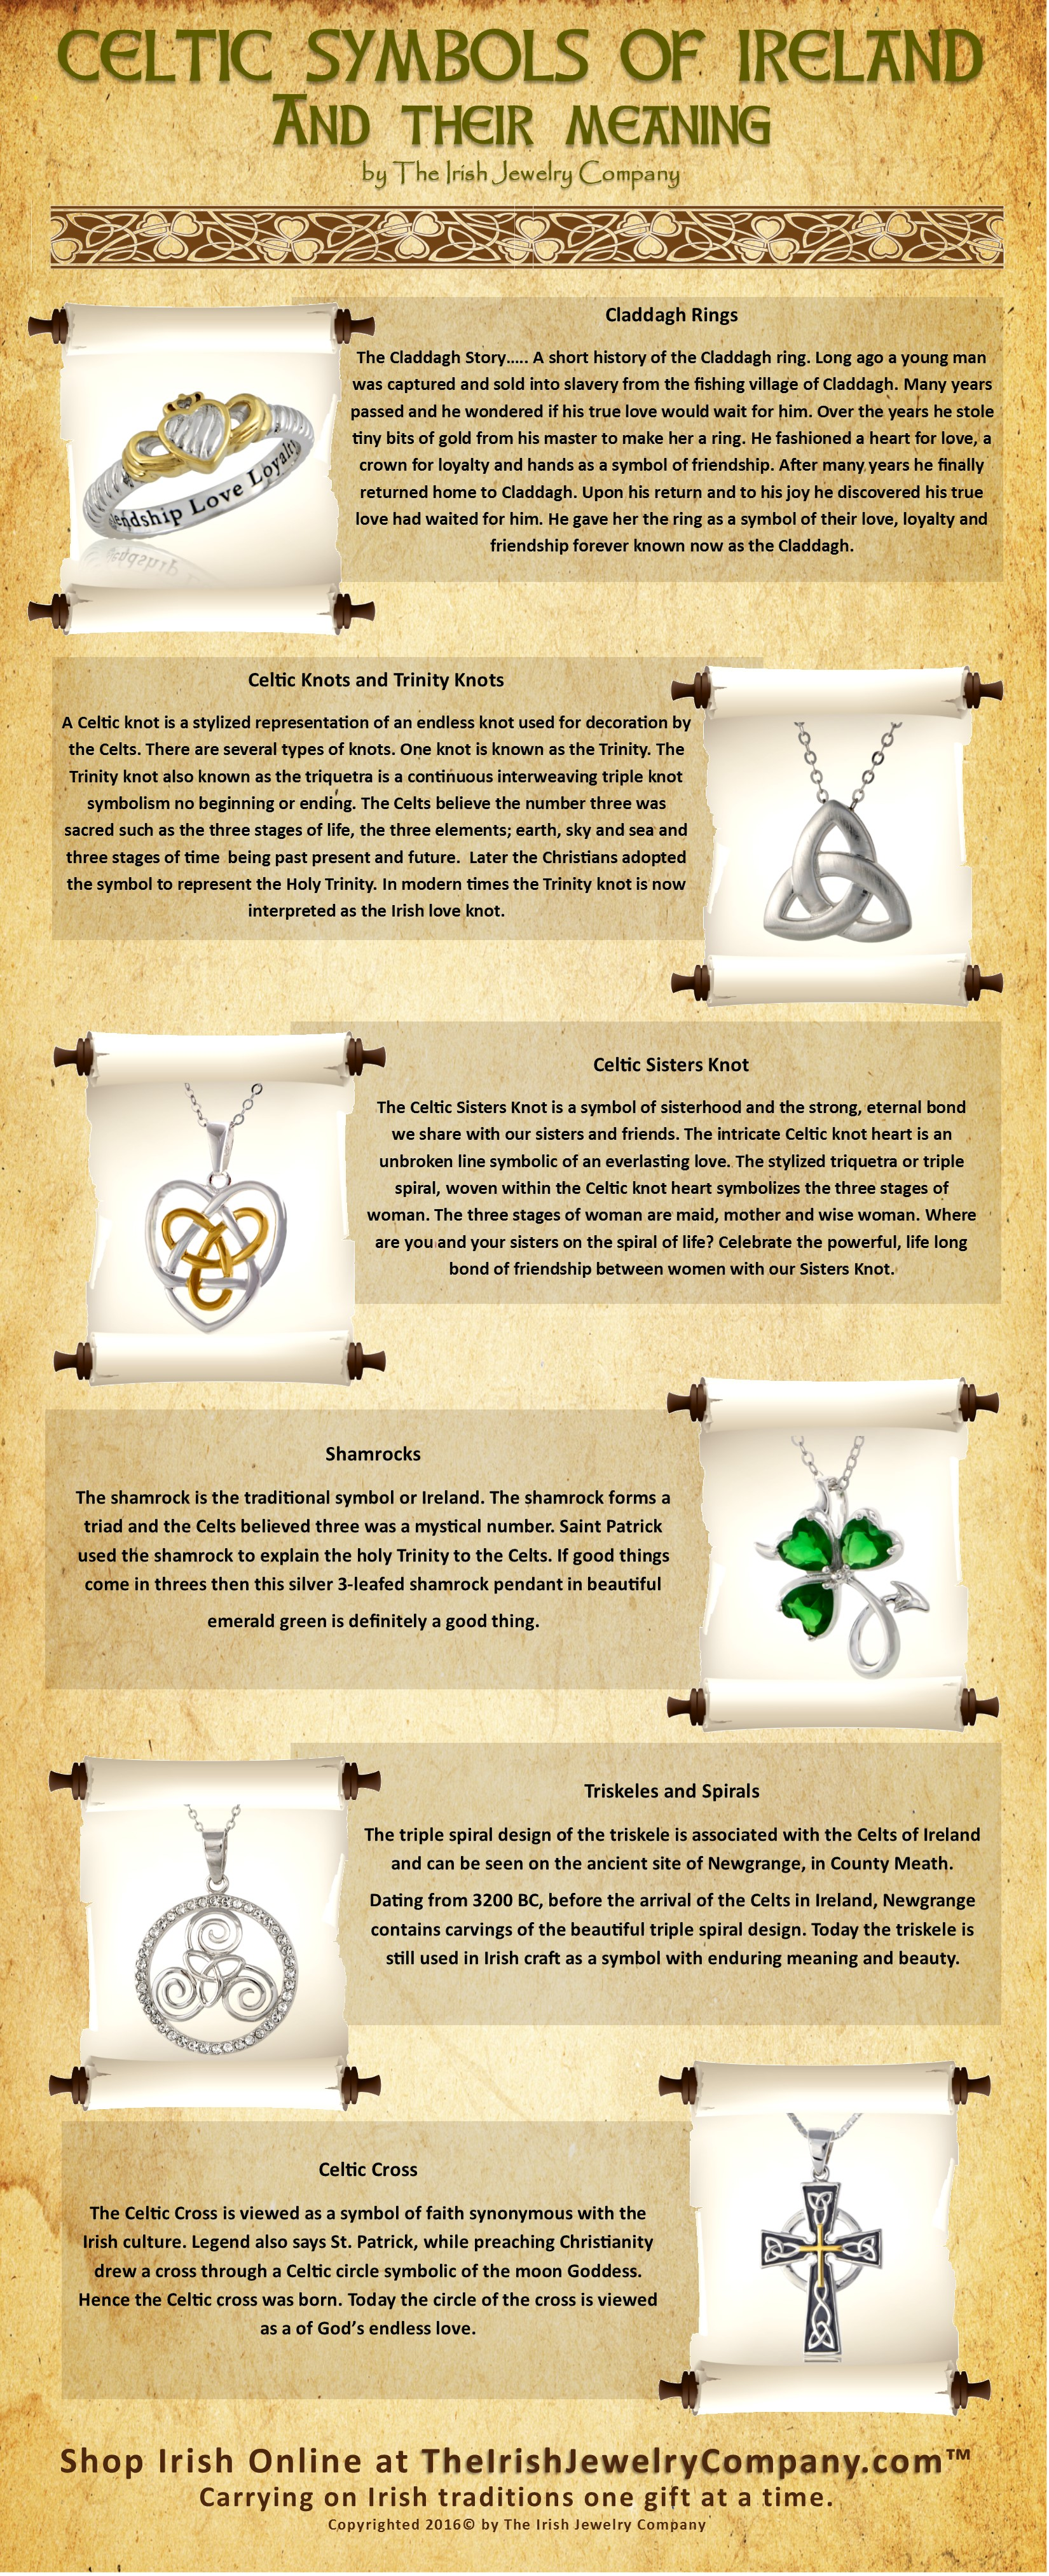 Celtic symbols and their meanings irish culture and traditions buycottarizona Gallery